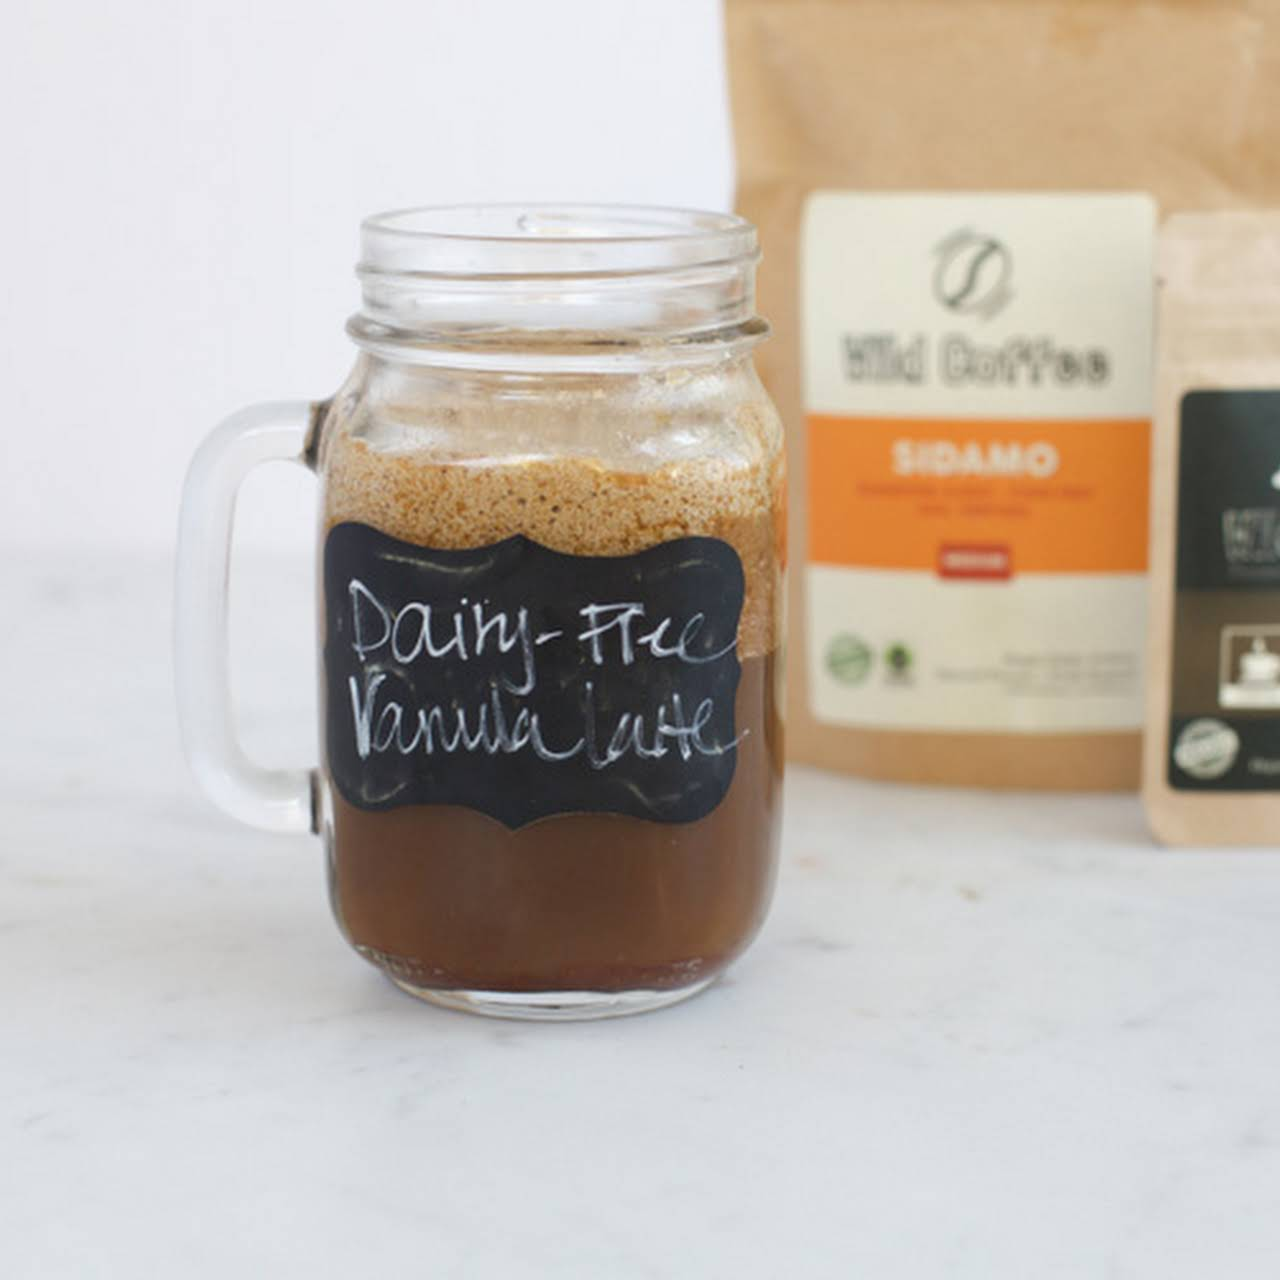 How to Make Homemade Cold Brew Coffee plus, dairy-free vanilla latte recipe